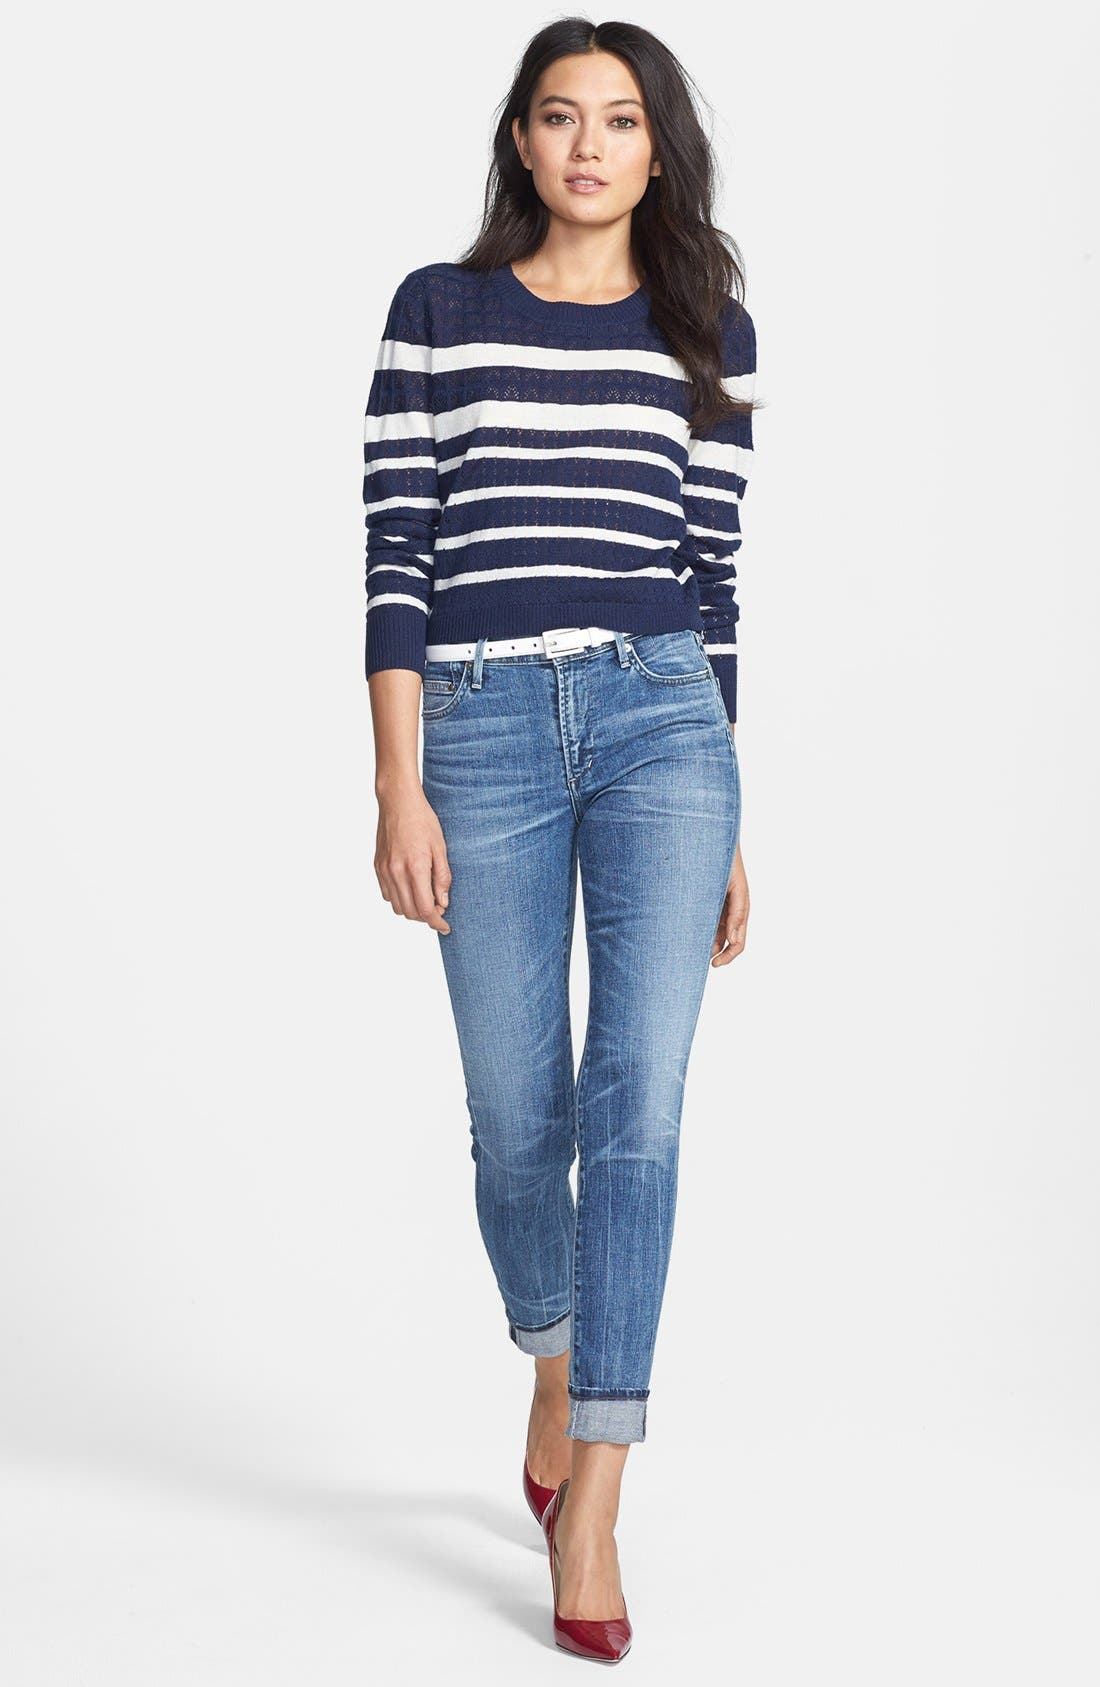 Main Image - Soft Joie Sweater & Citizens of Humanity Jeans